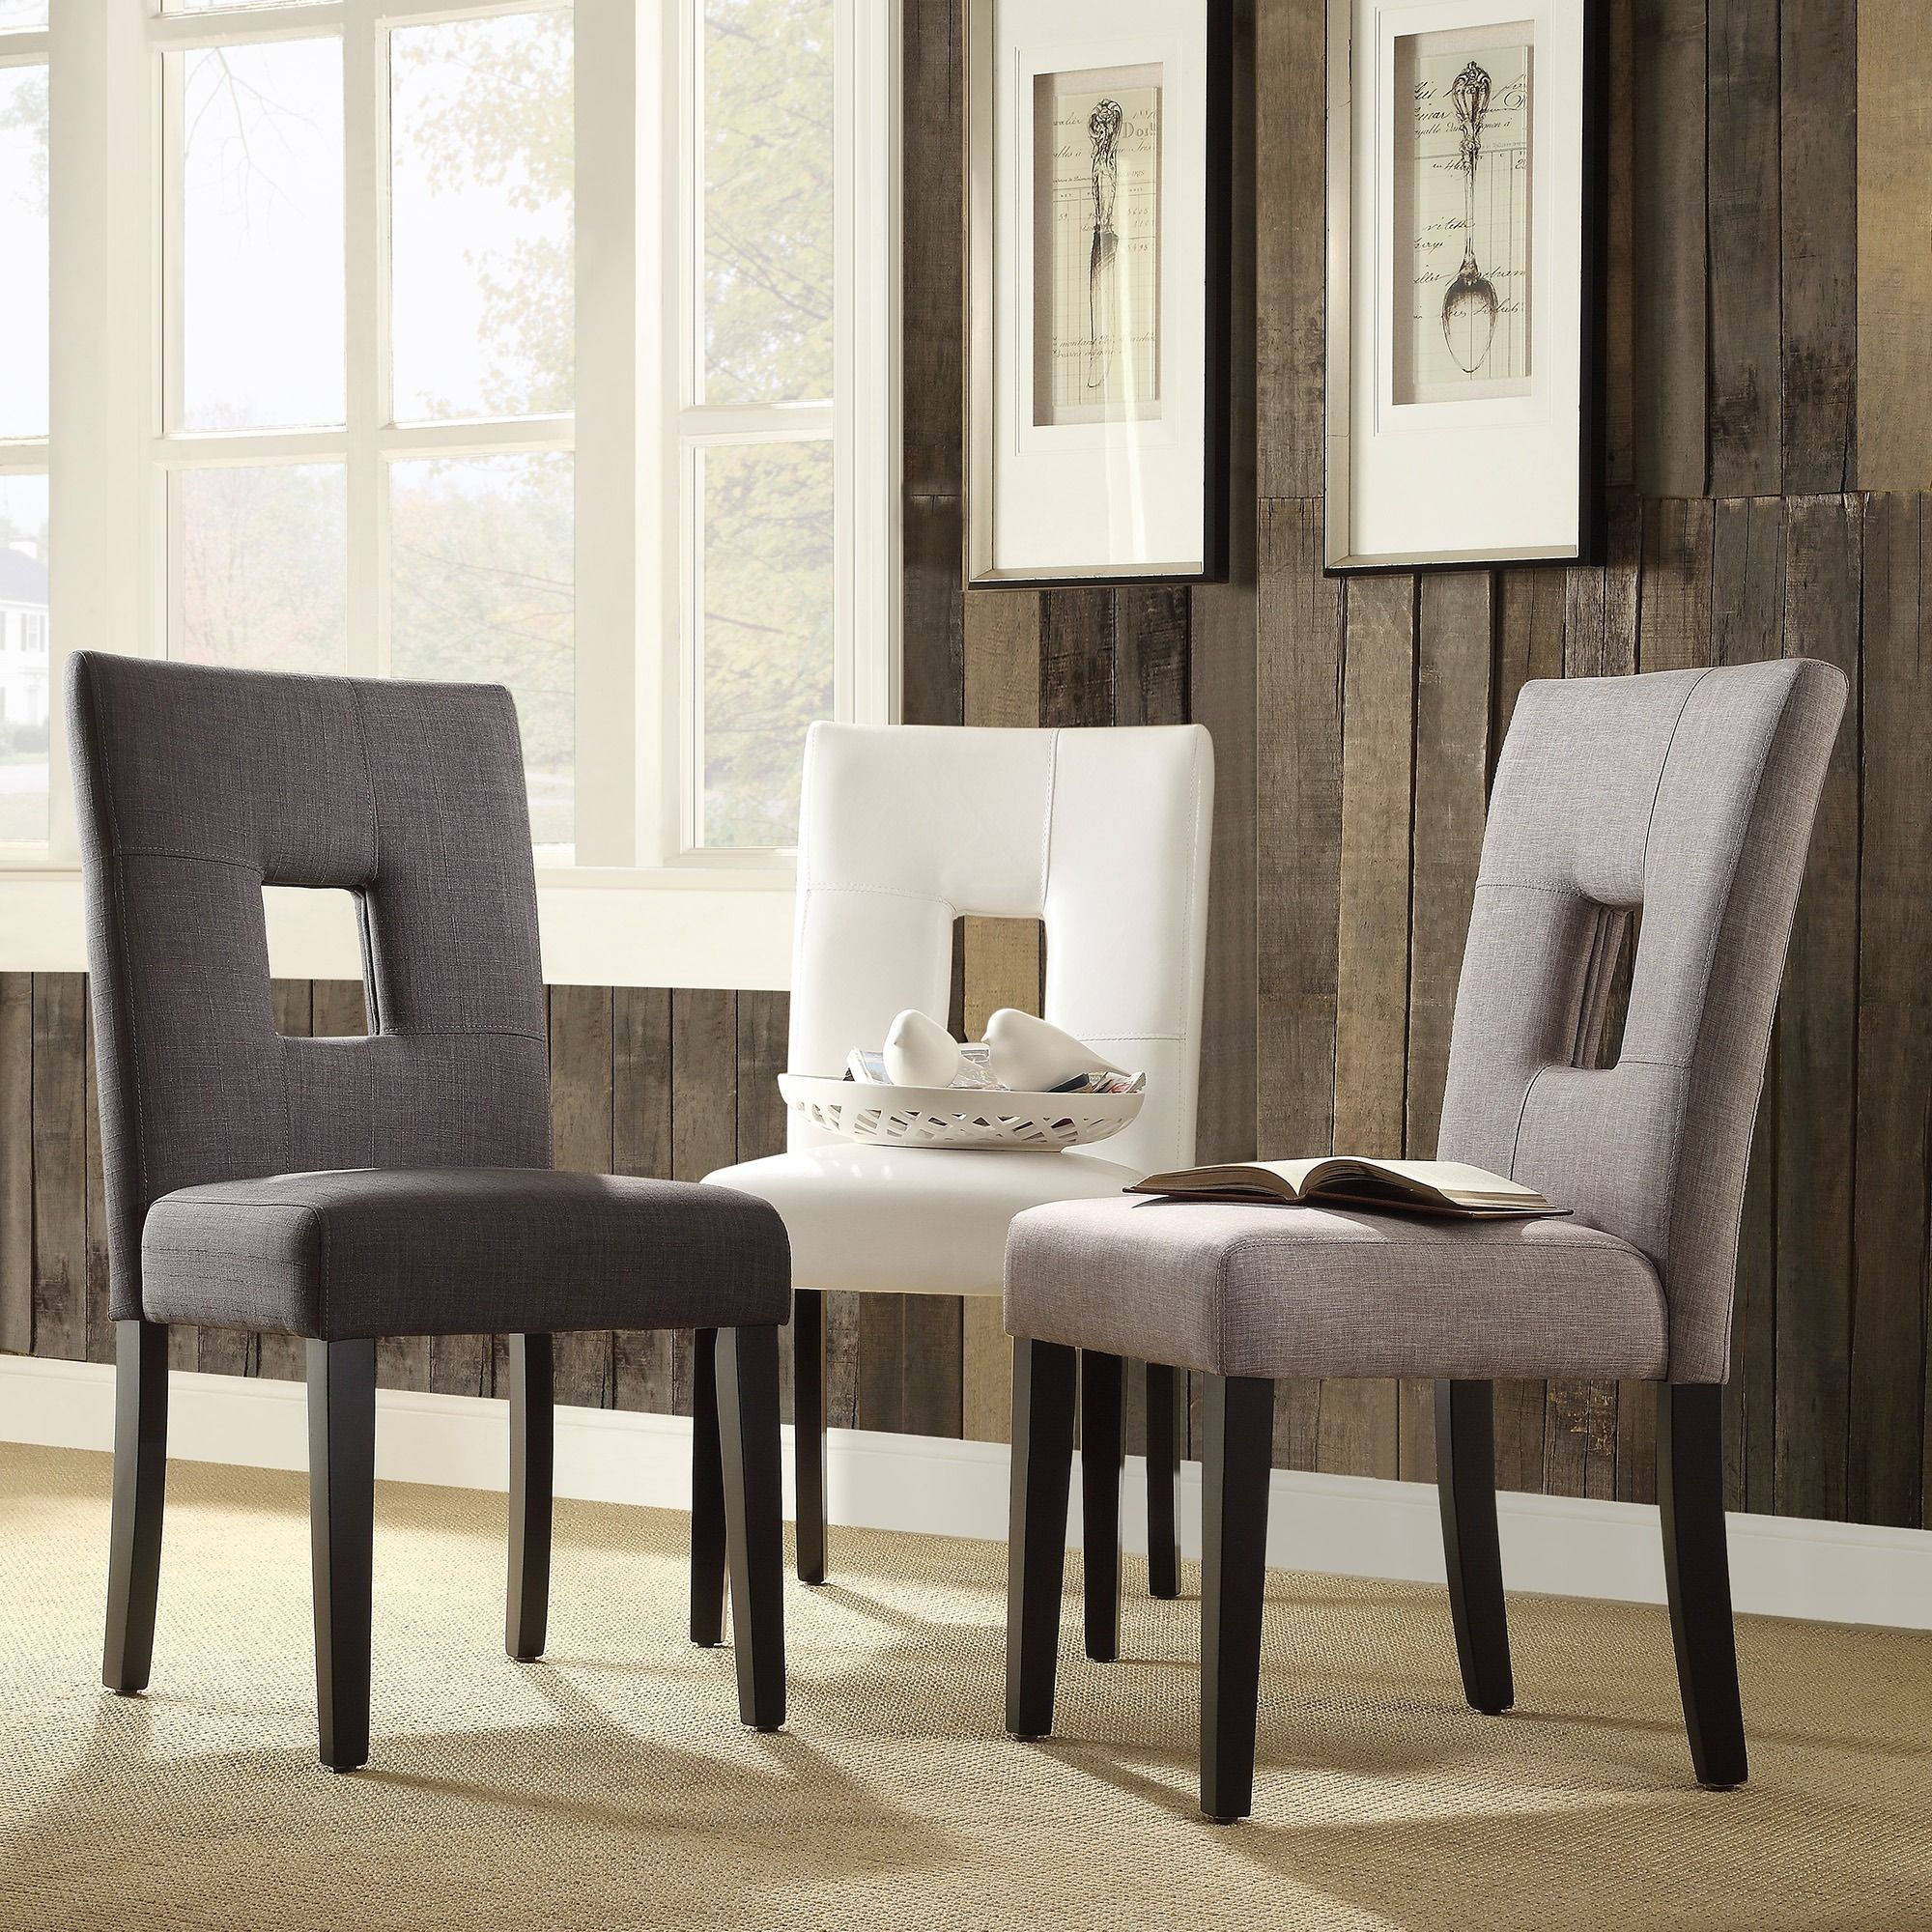 Mendoza Keyhole Back Dining Chairs by Inspire Q (Set of 2) by INSPIRE Q